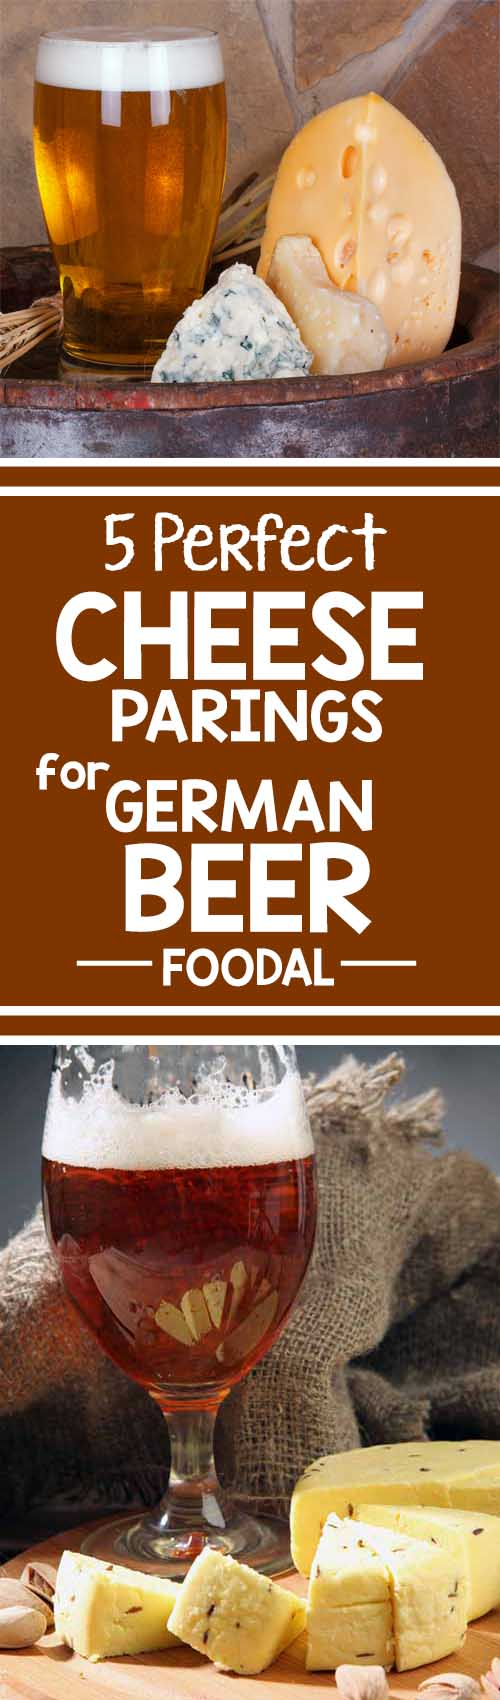 Excited for Oktoberfest? So are we! Foodal has all the info you need to build a cheese board to celebrate the harvest season and complement your favorite full-bodied, malt-forward lagers. Learn why cheese and beer make the perfect pair and the best spreads, breads, and honeys to serve with your pairings. https://foodal.com/holidays/oktoberfest/beer-cheese-pairings/ ‎